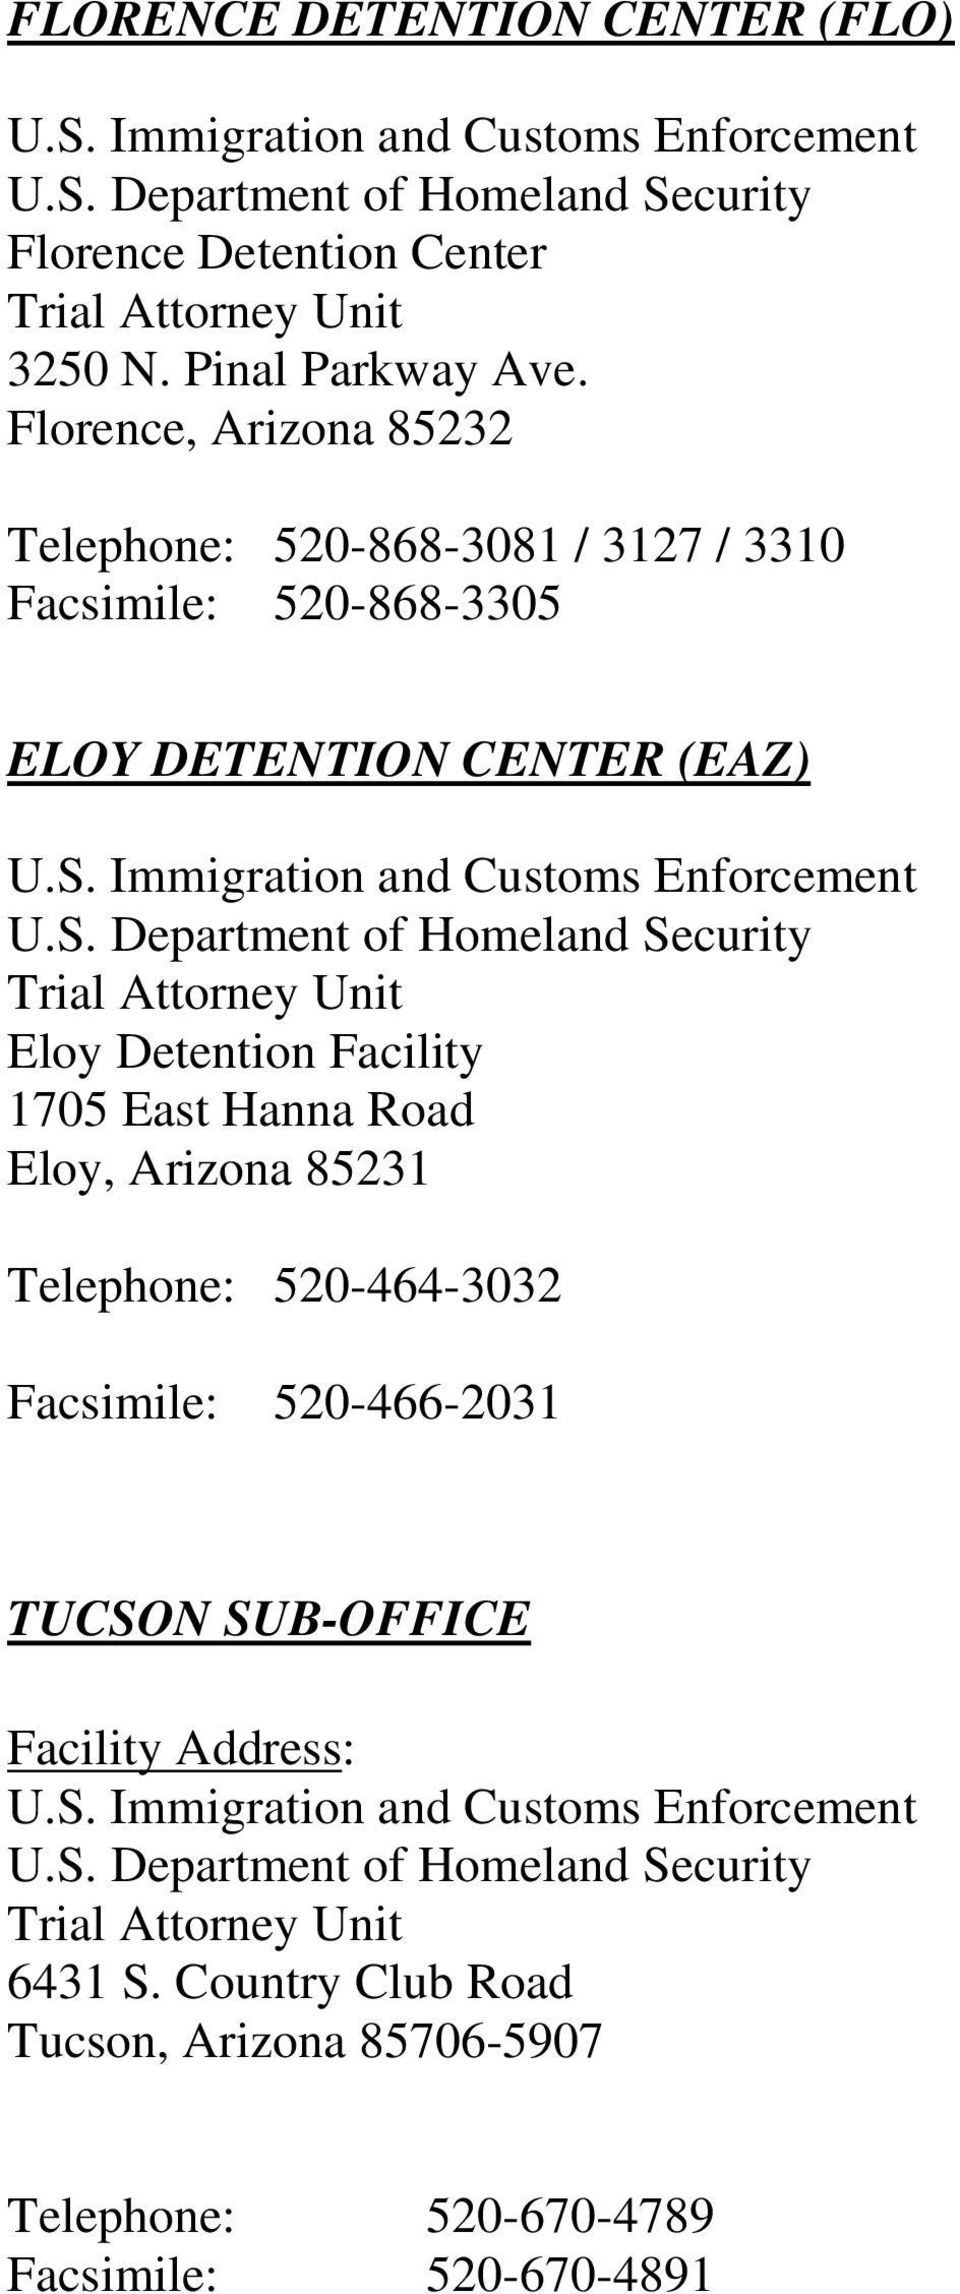 Attorney Unit Eloy Detention Facility 1705 East Hanna Road Eloy, Arizona 85231 Telephone: 520-464-3032 Facsimile: 520-466-2031